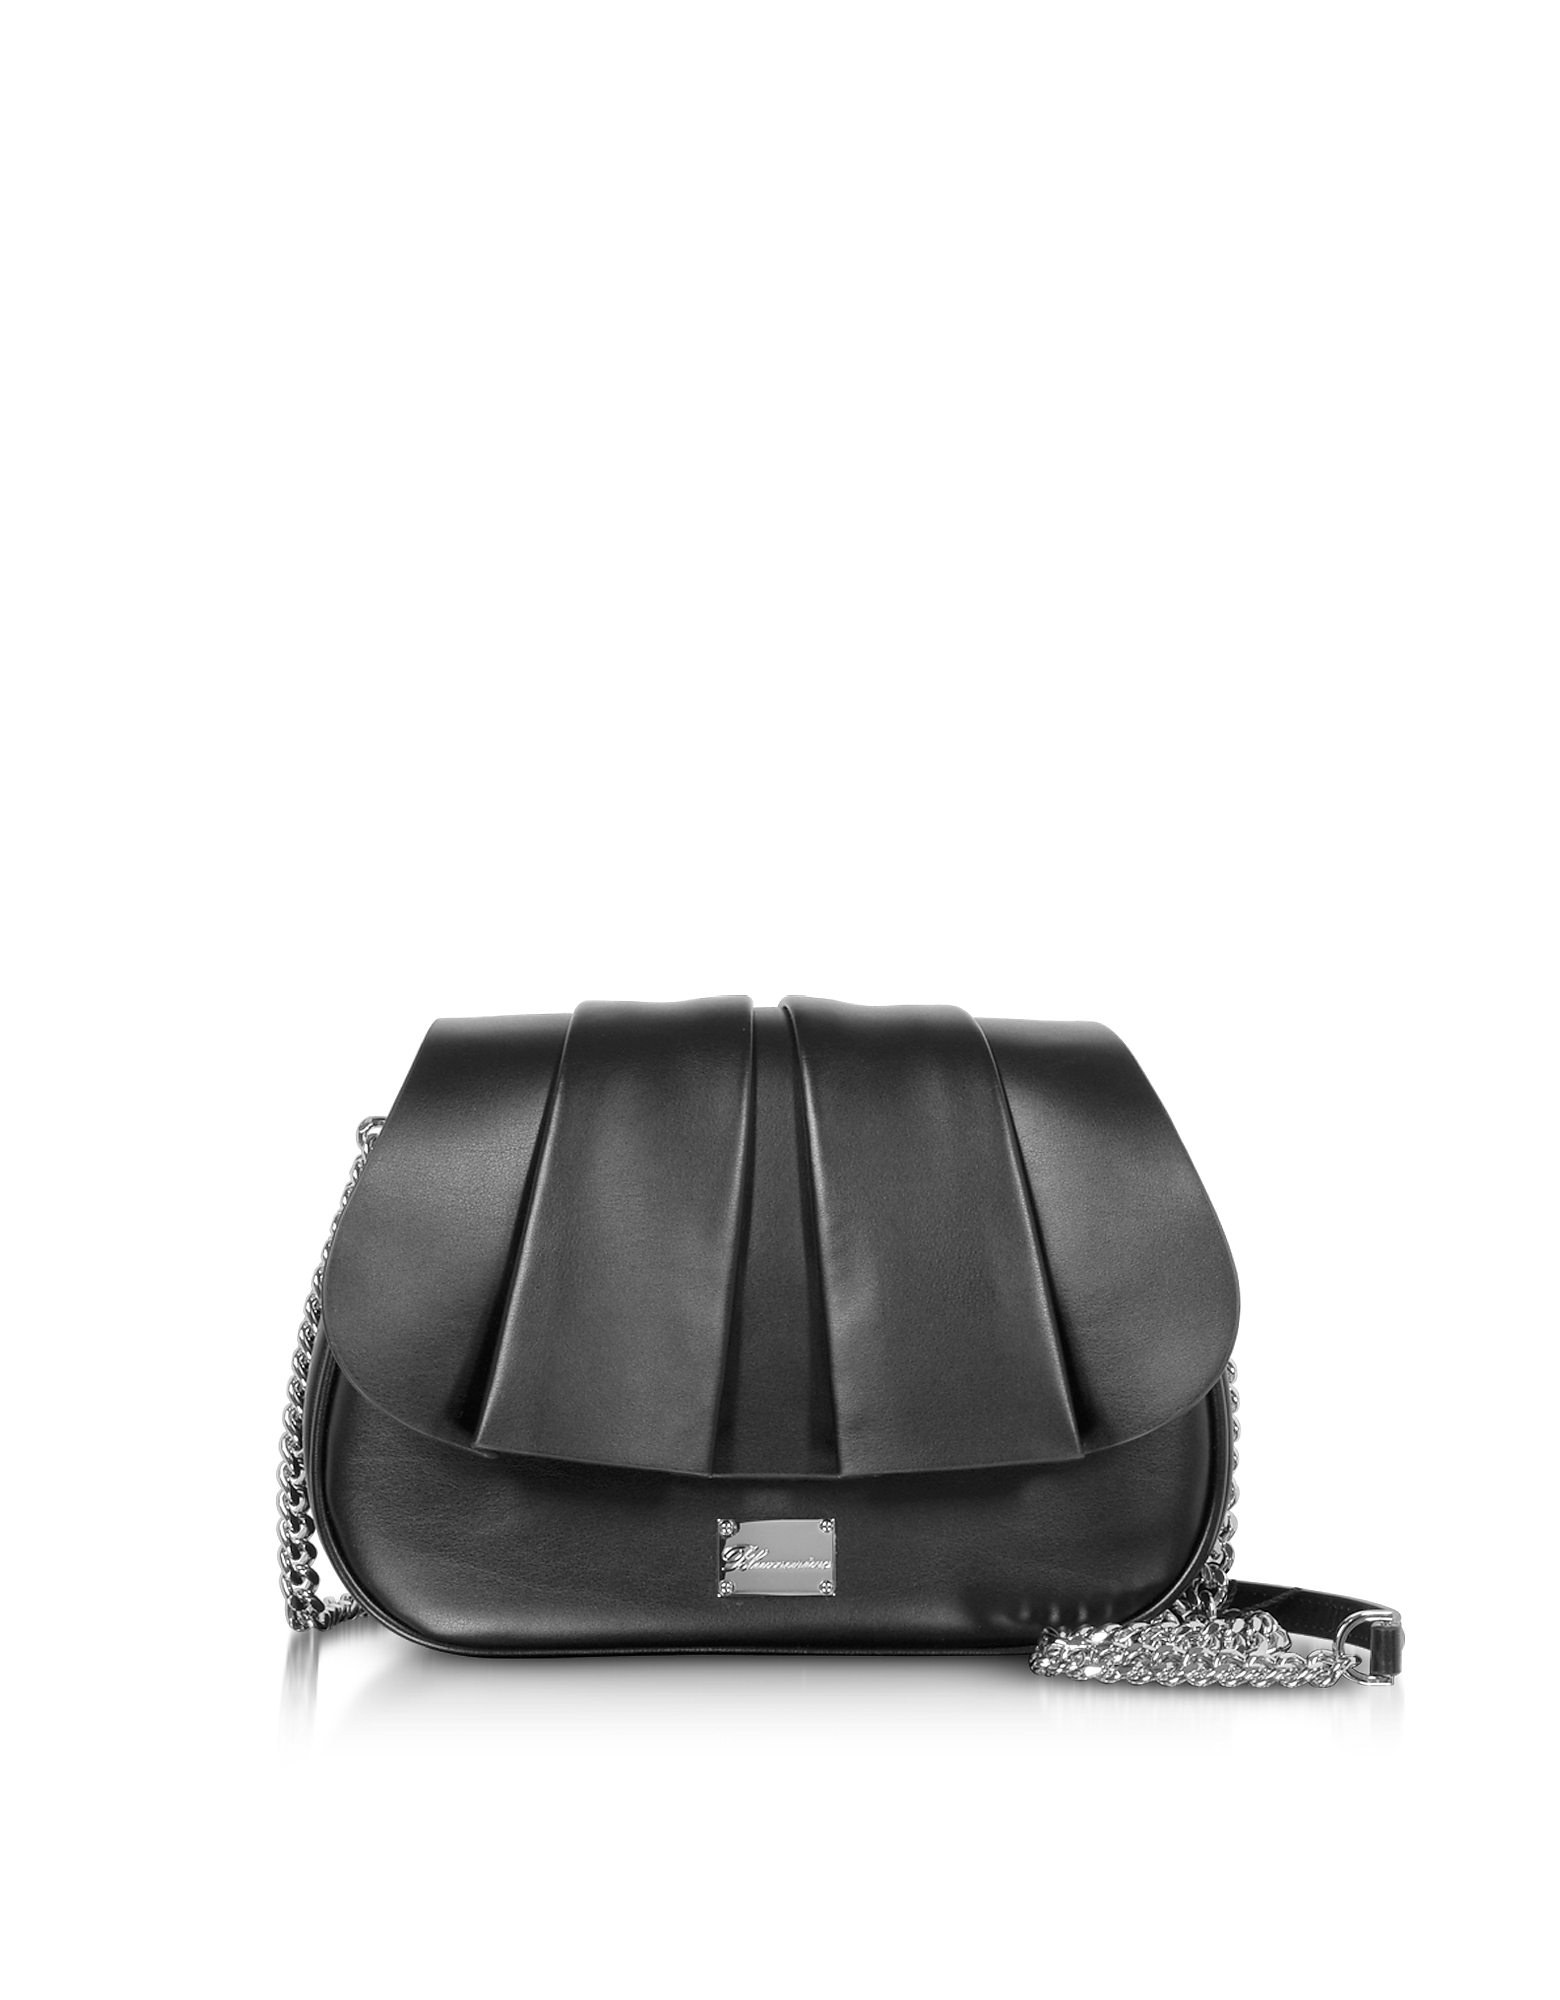 Blumarine Designer Handbags, Karen Black Leather Shoulder Bag